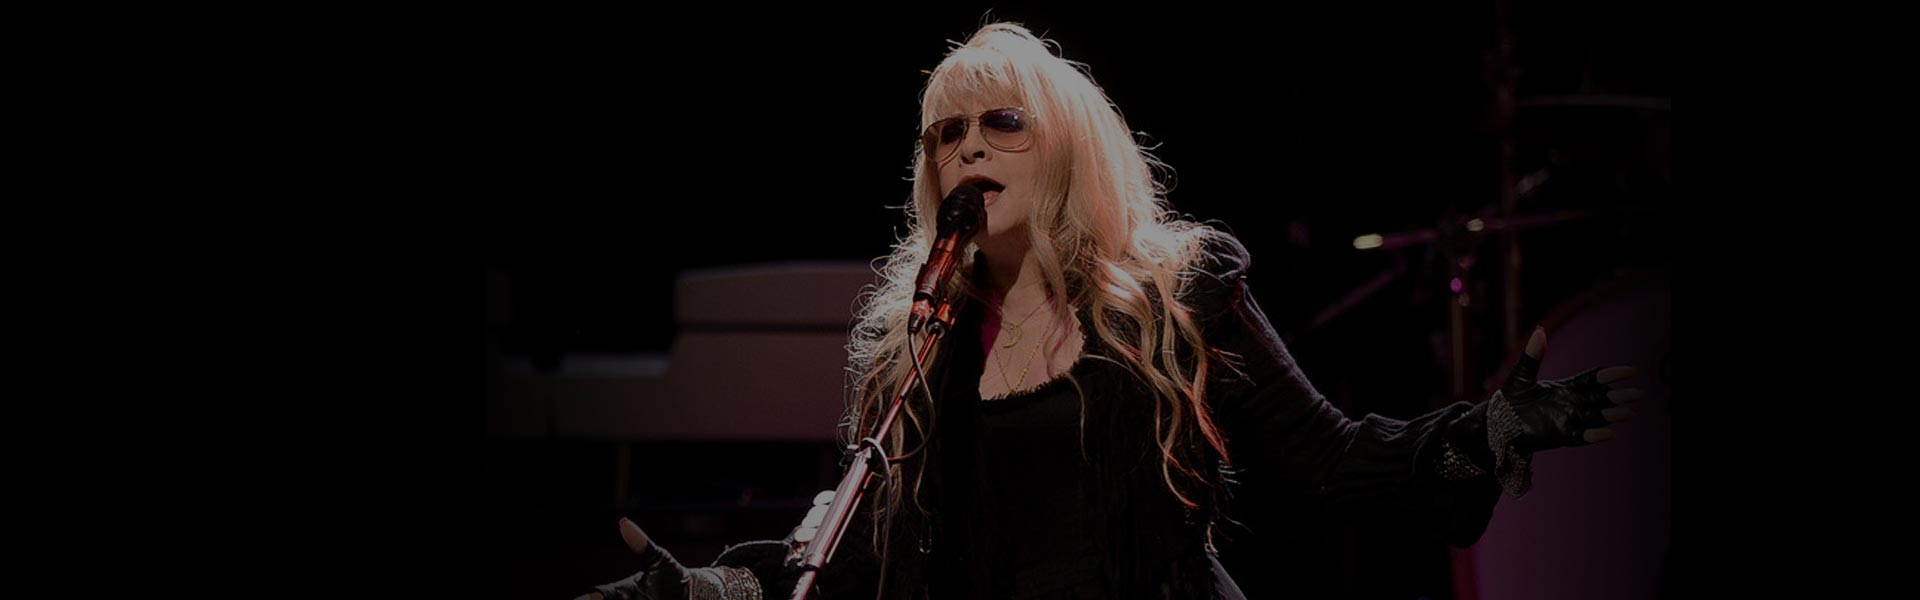 Videos | Stevie Nicks